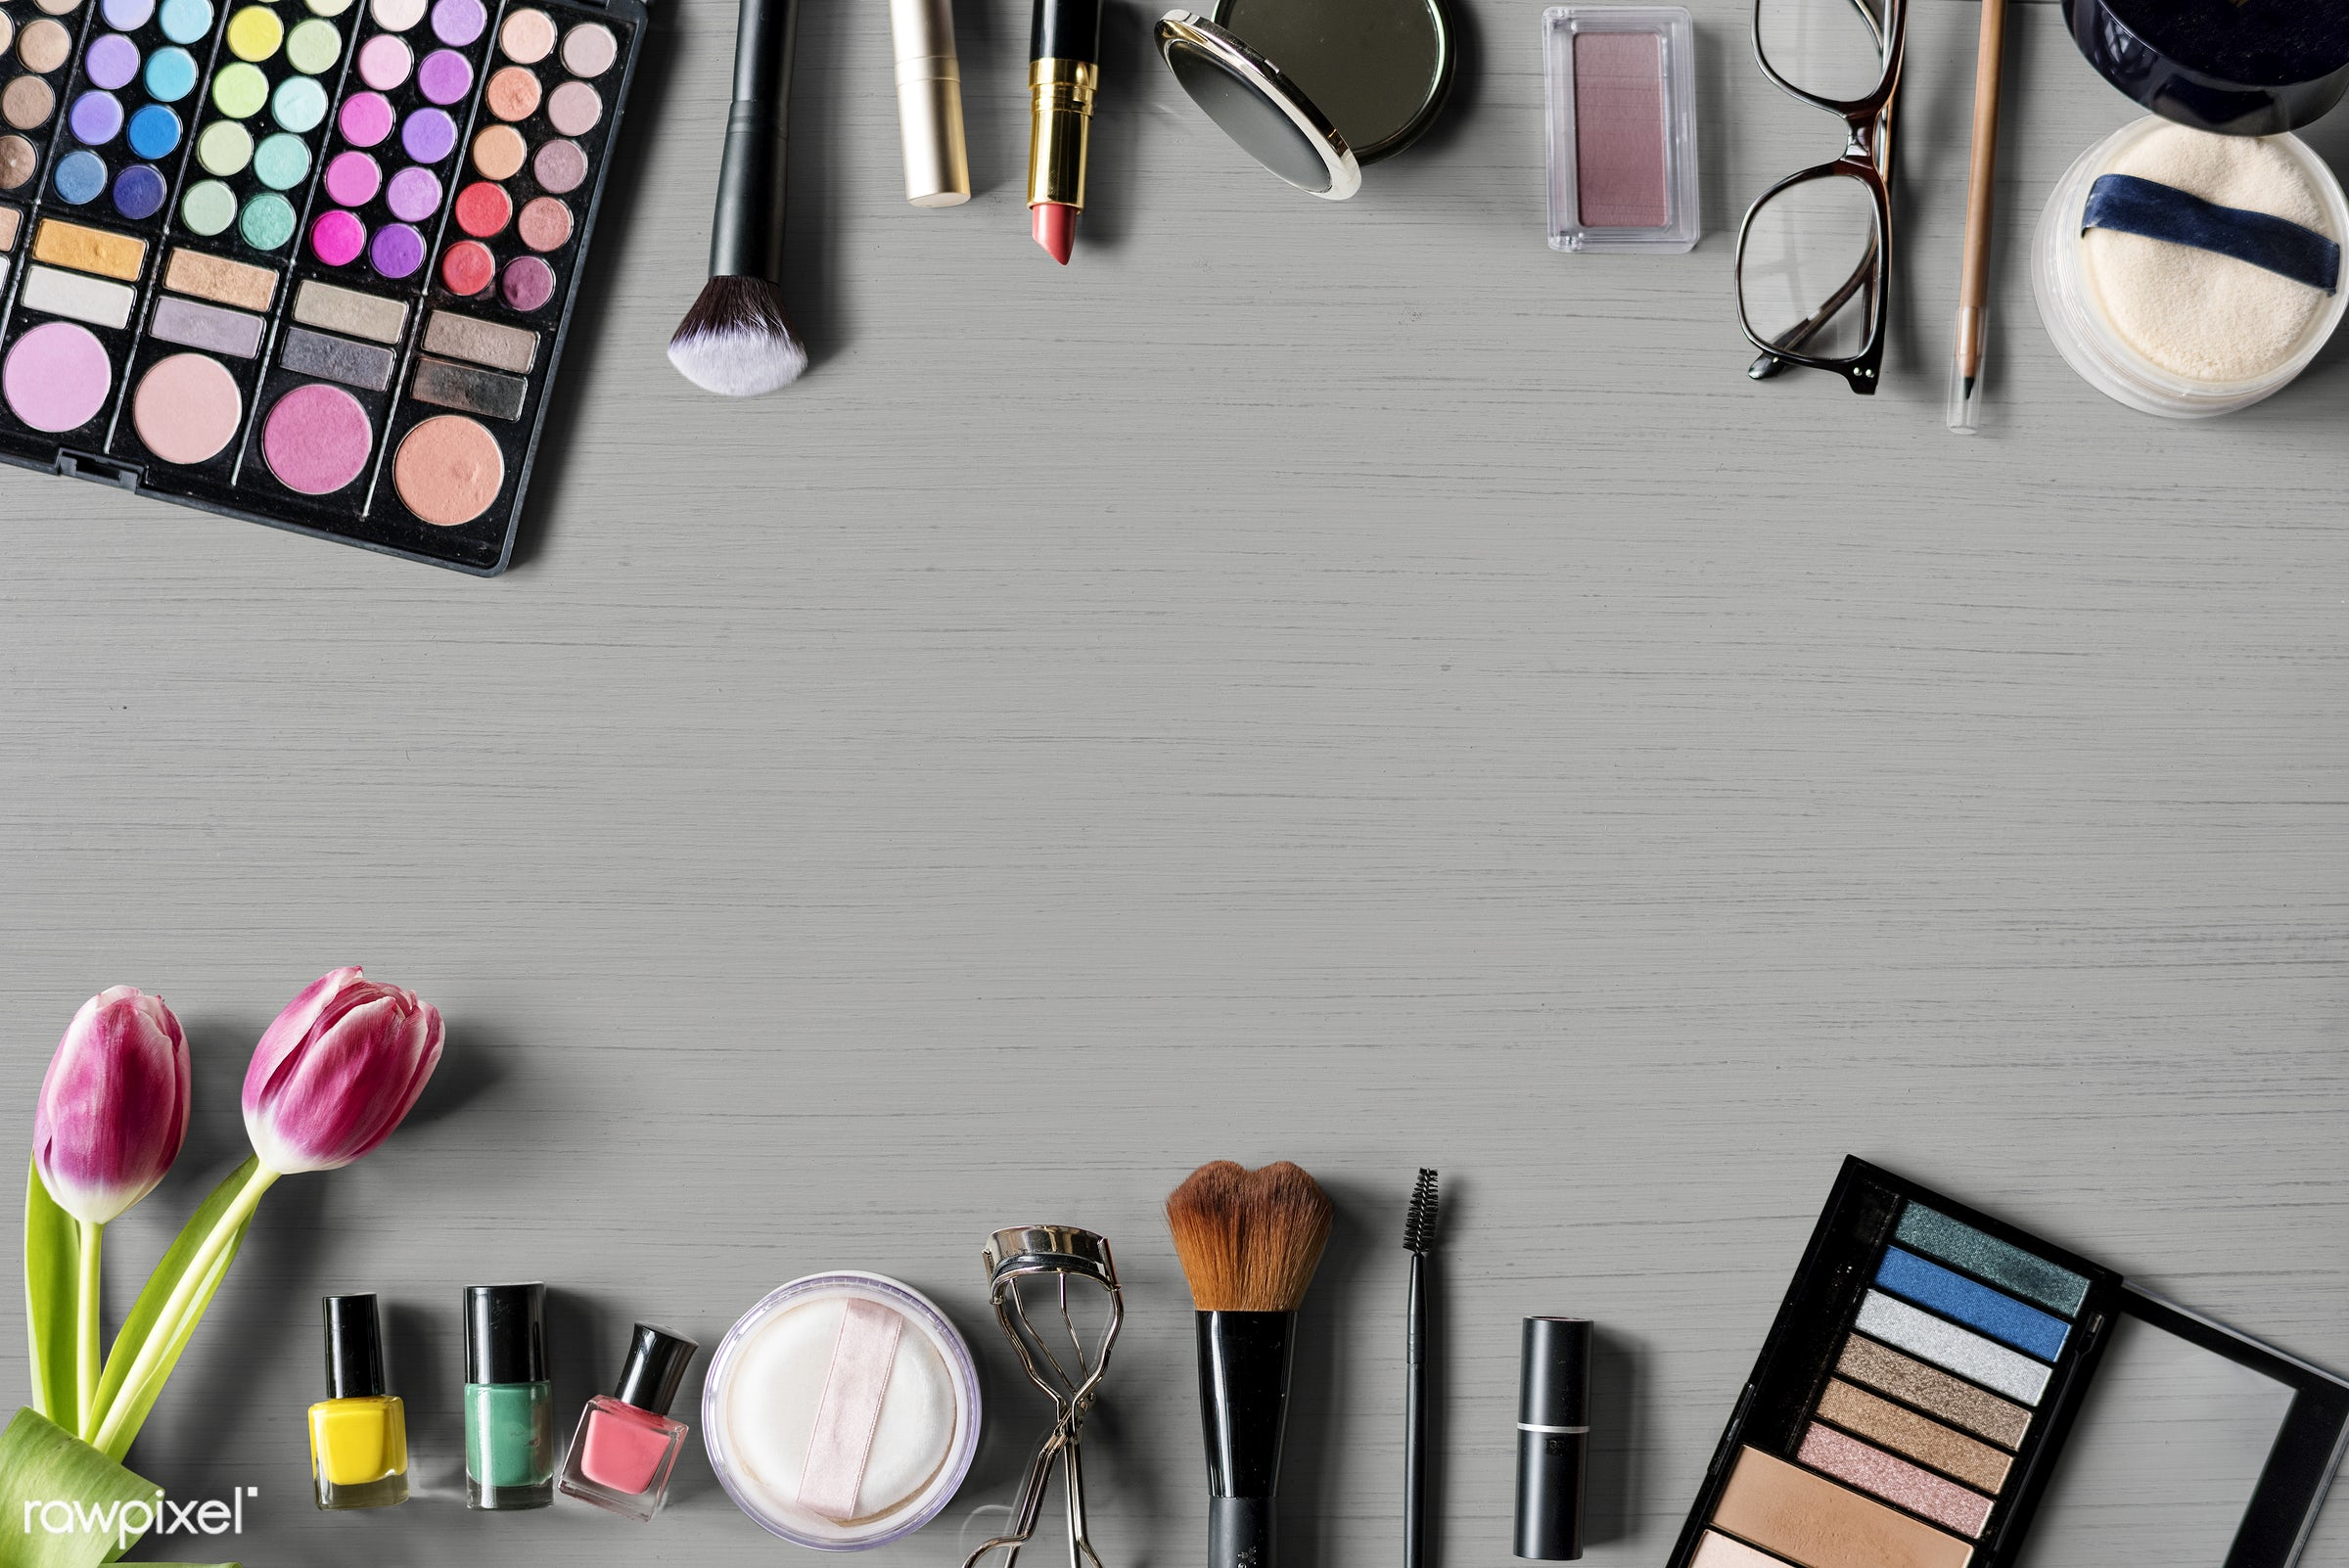 Design space on table with make up cosmetics - makeup, attach, attached, beauty, blush, brushes, care, collection, colors,...